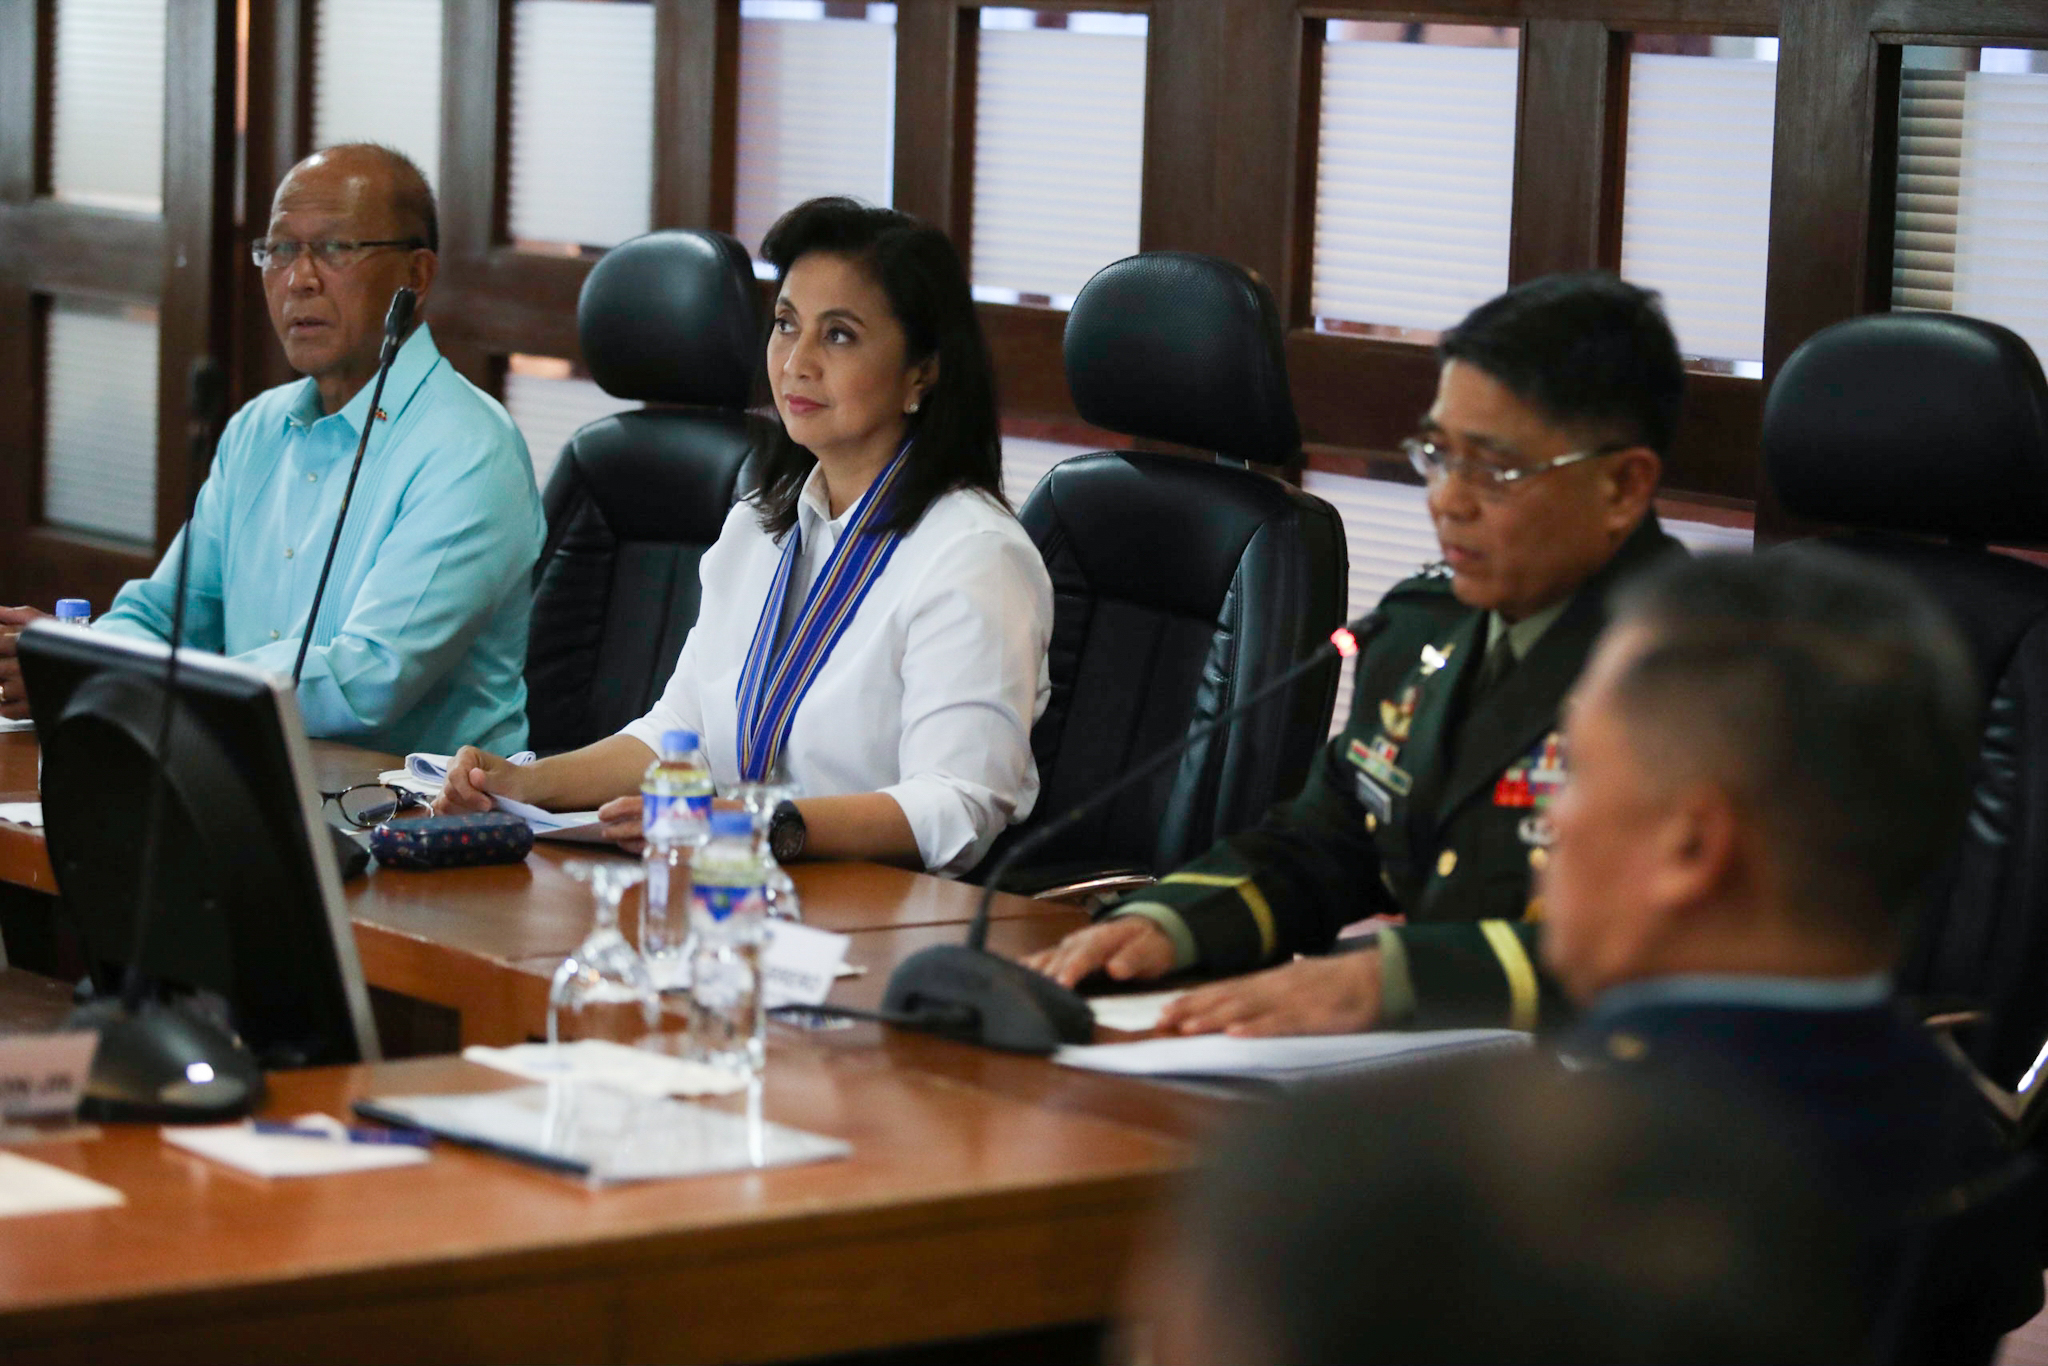 SECURITY BRIEFING. Vice President Leni Robredo receives a national security briefing from Defense Secretary Delfin Lorenzana and AFP chief of staff Rey Leonardo Guerrero. Photo by the OVP